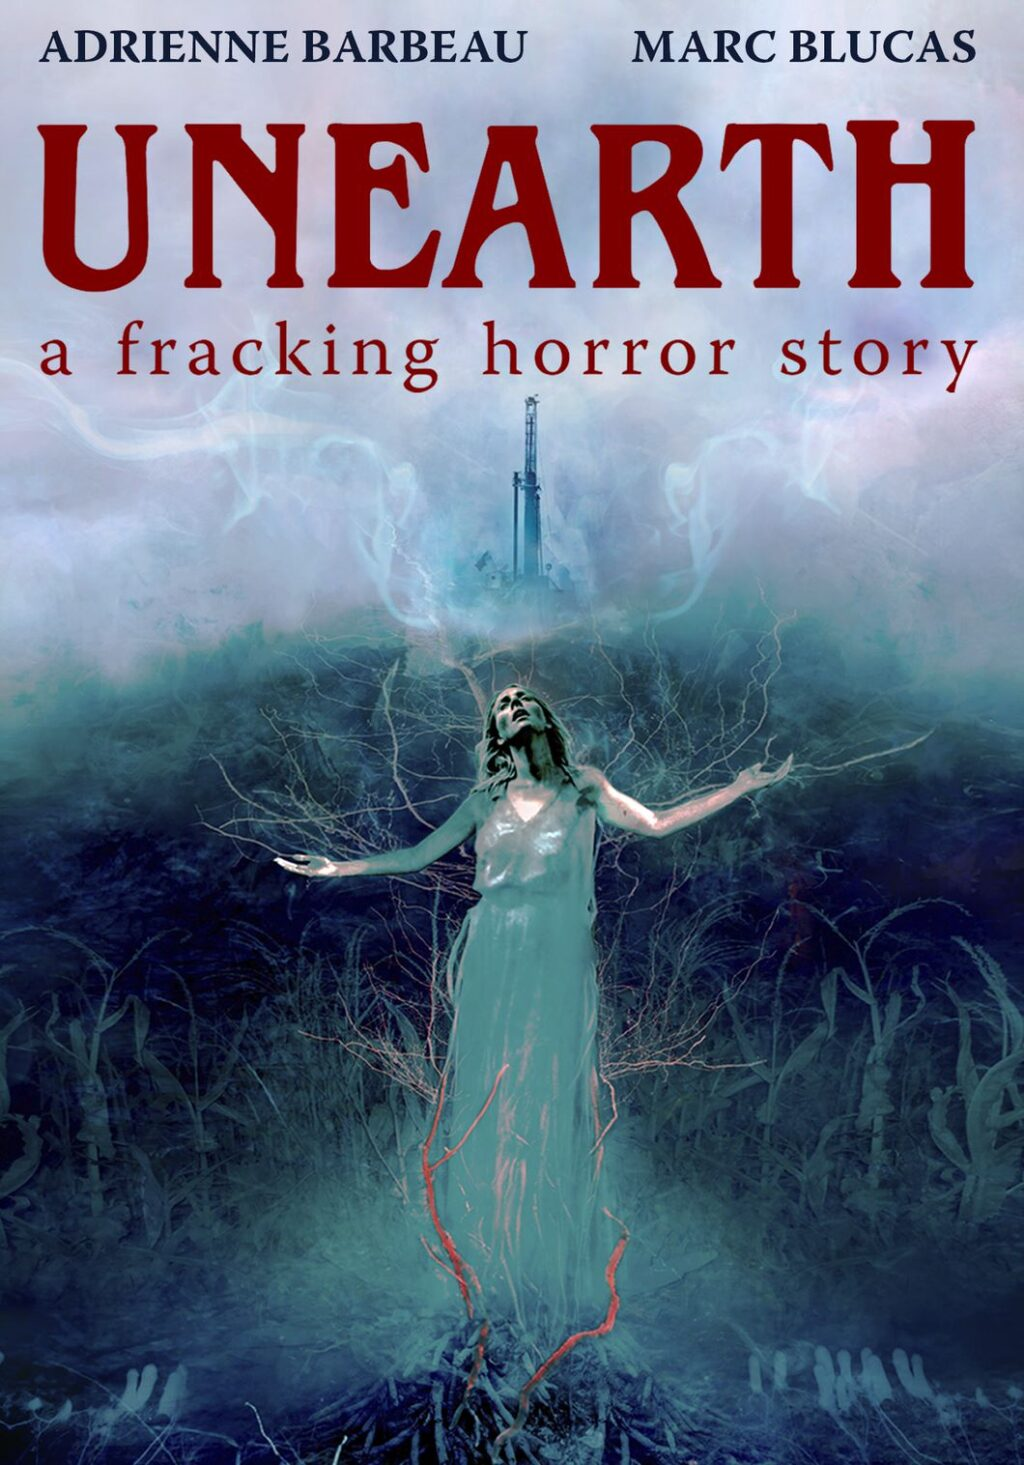 Unearthposter 1024x1465 - Exclusive Interview: Adrienne Barbeau on Eco-Horror UNEARTH and Her Legendary Life